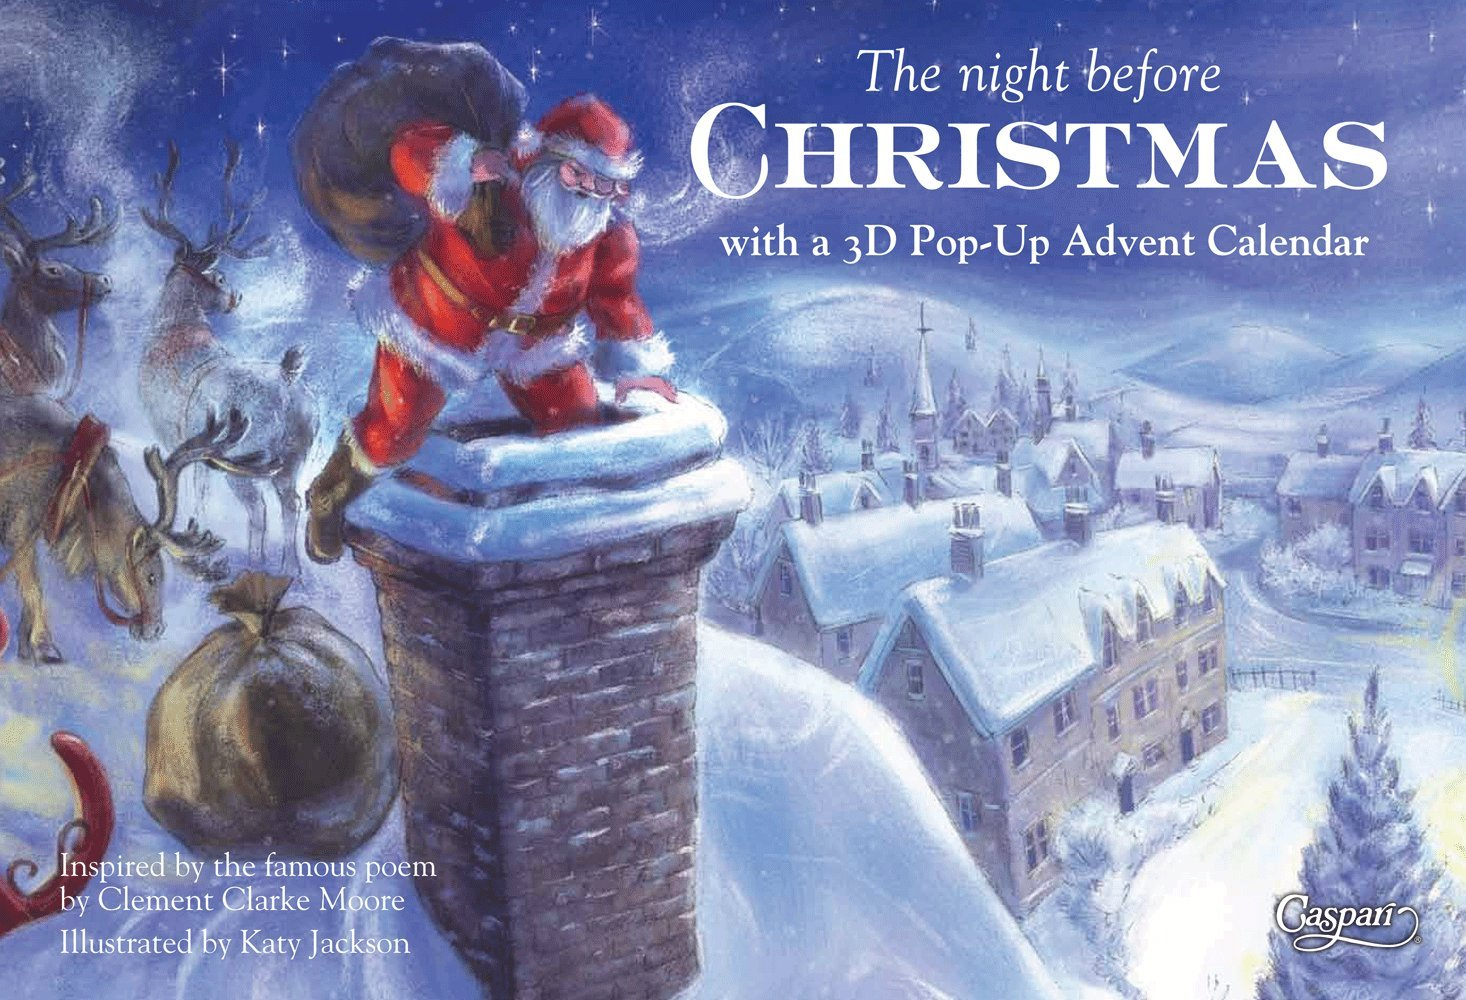 Caspari Christmas Advent Calendar and Story Book, Night Before Christmas Caspari Inc. ADV218